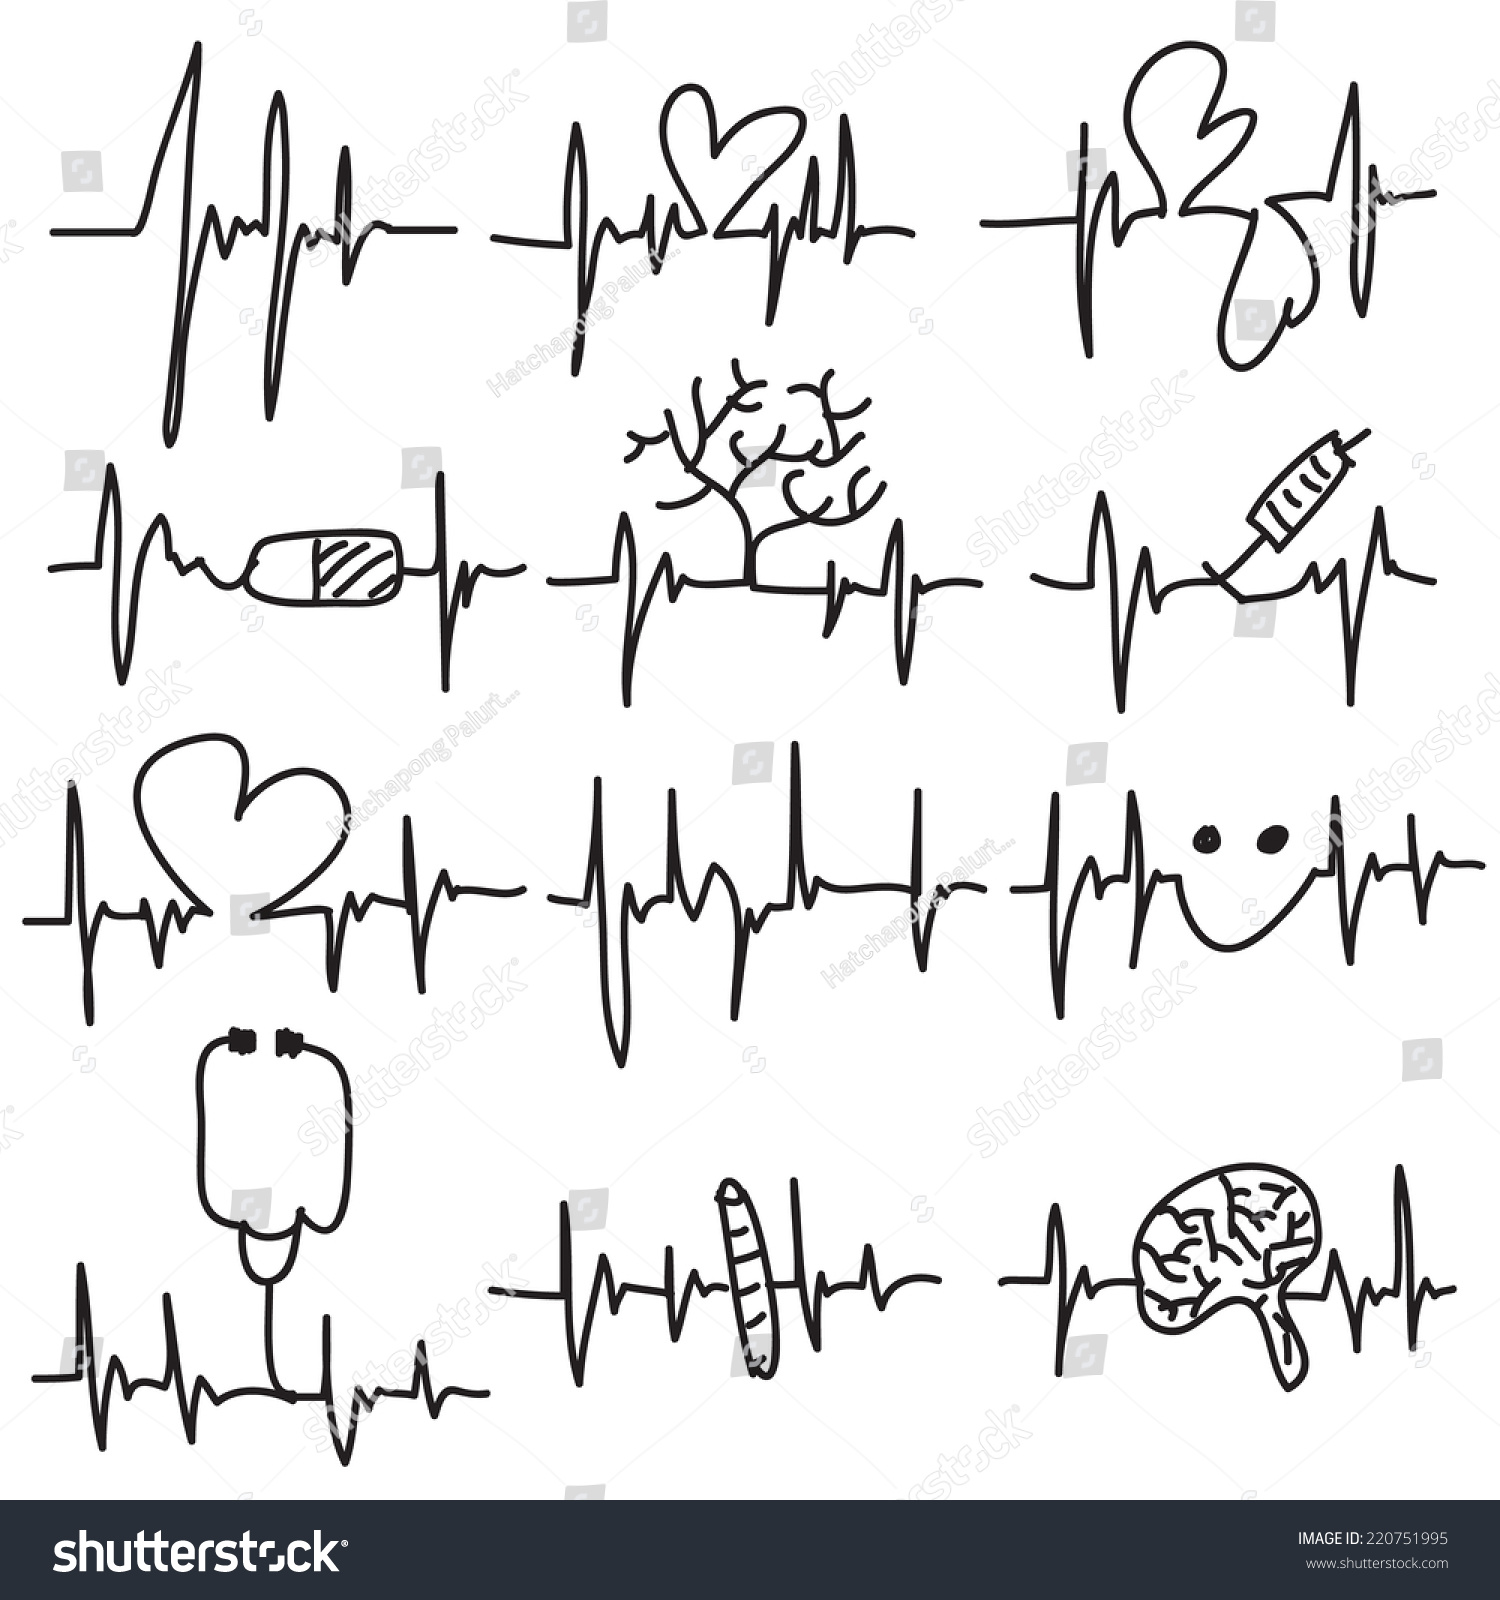 Heartbeat Line Drawing: Vector Illustration Of Drawn Heart Beat, Cardiogram, Pulse